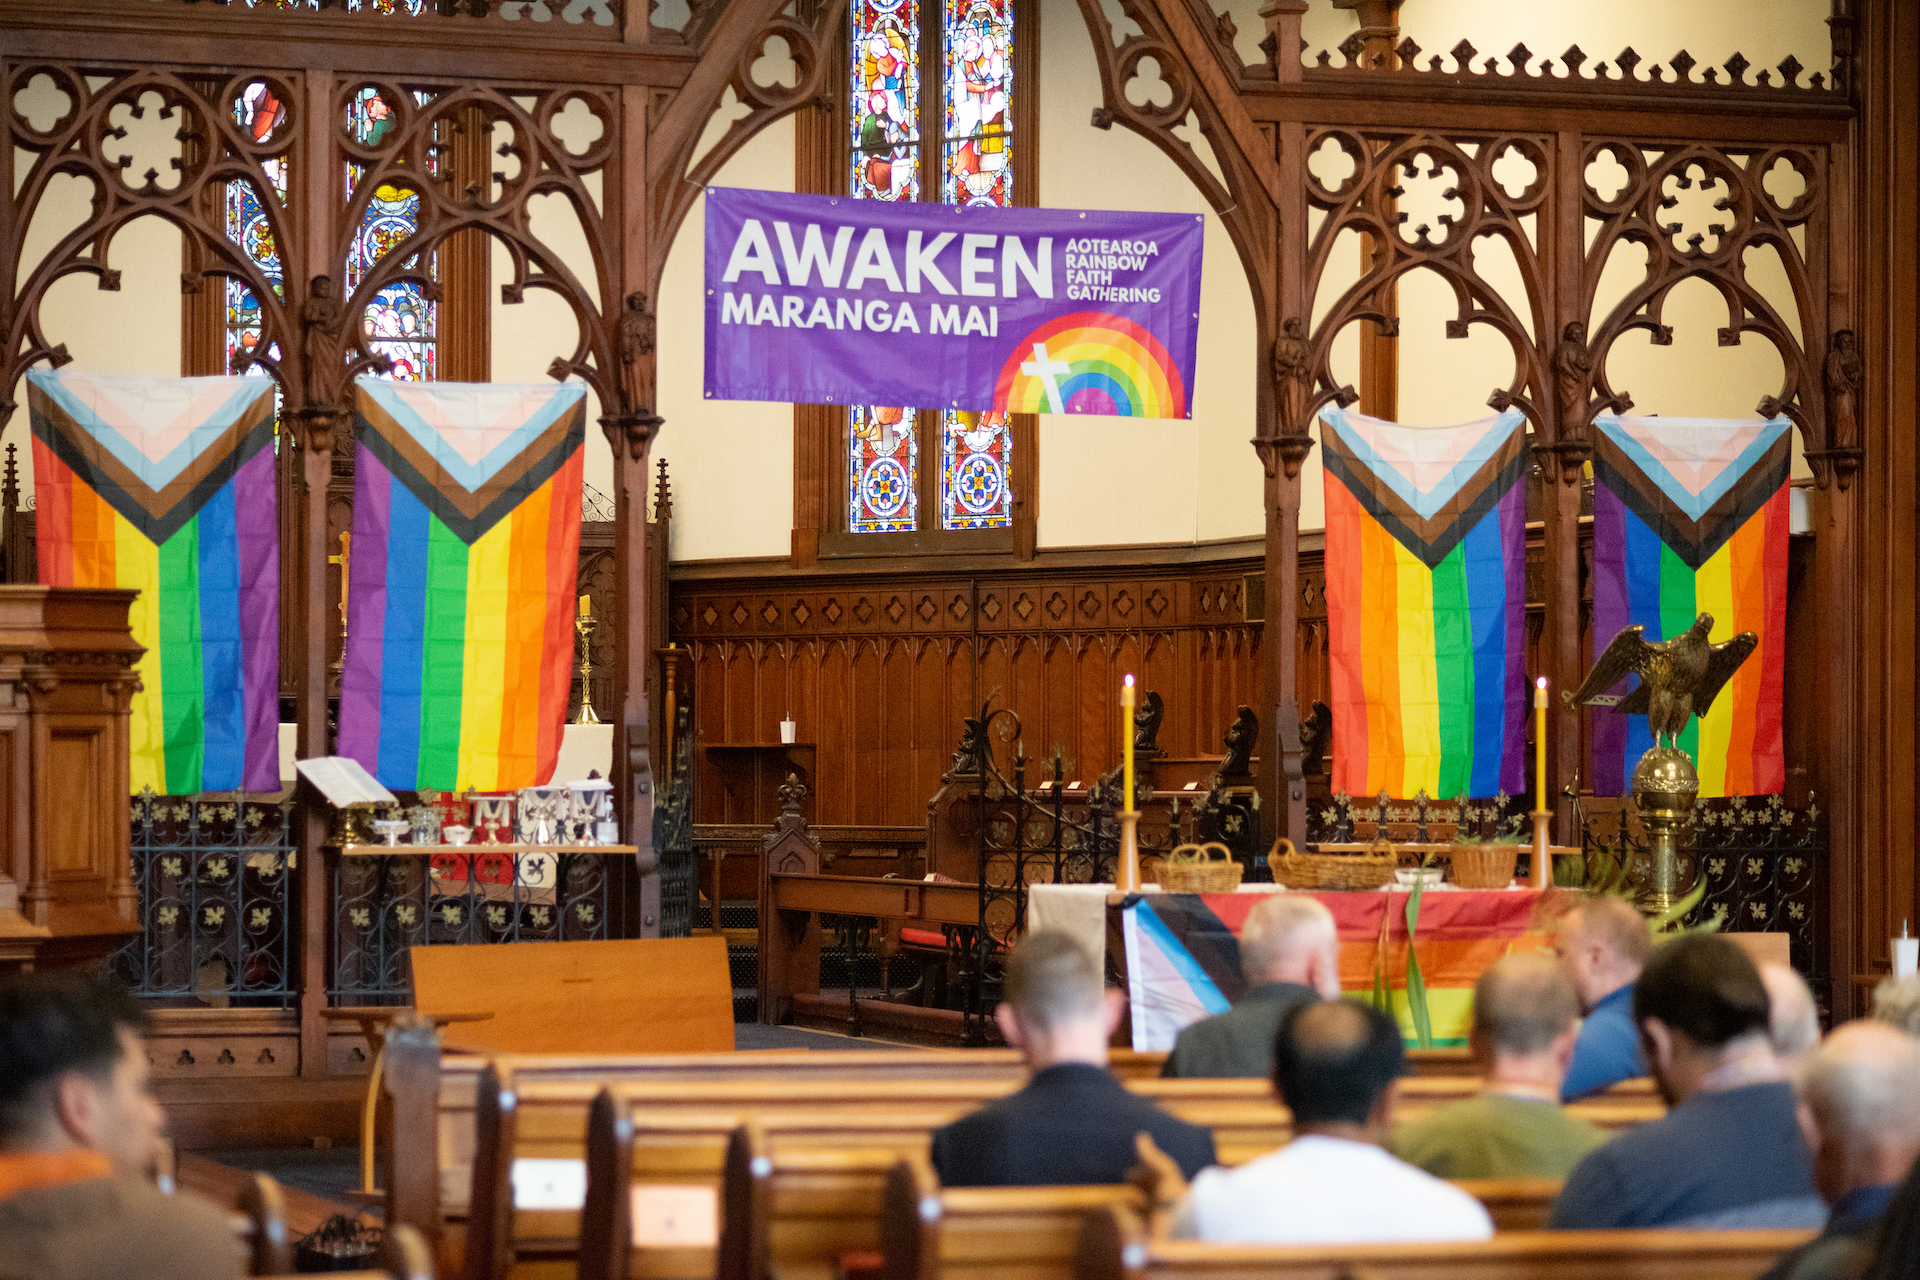 Rainbow banners hang at front of church; people sit in pews.